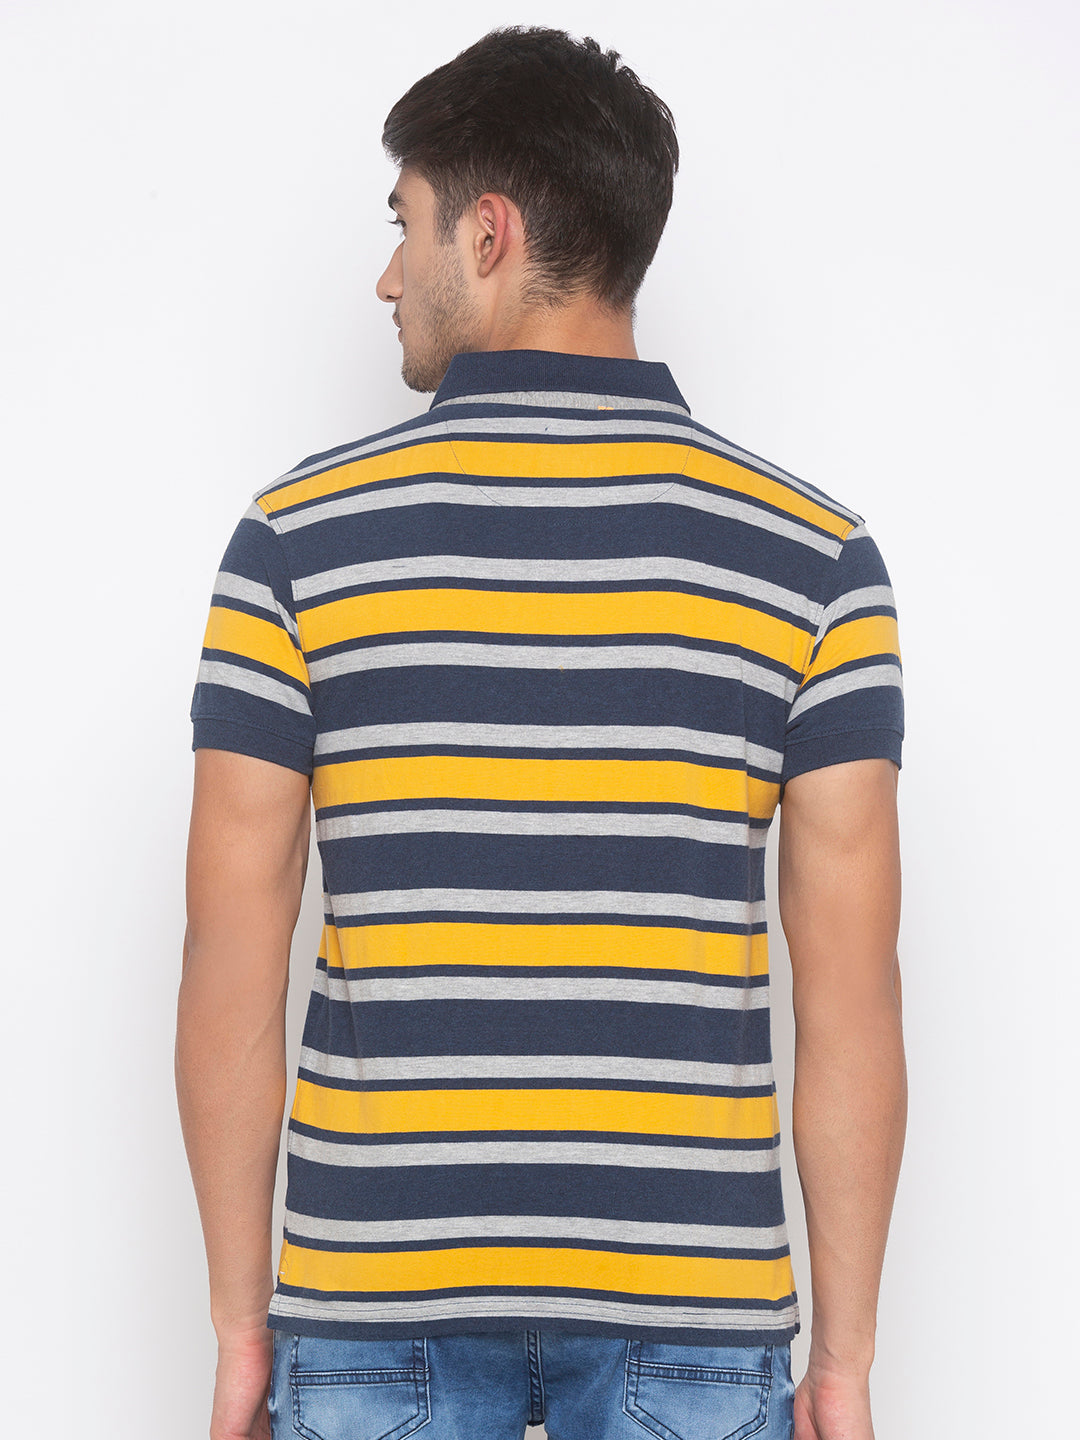 Globus Mustard & Navy Blue Striped T-Shirt-3